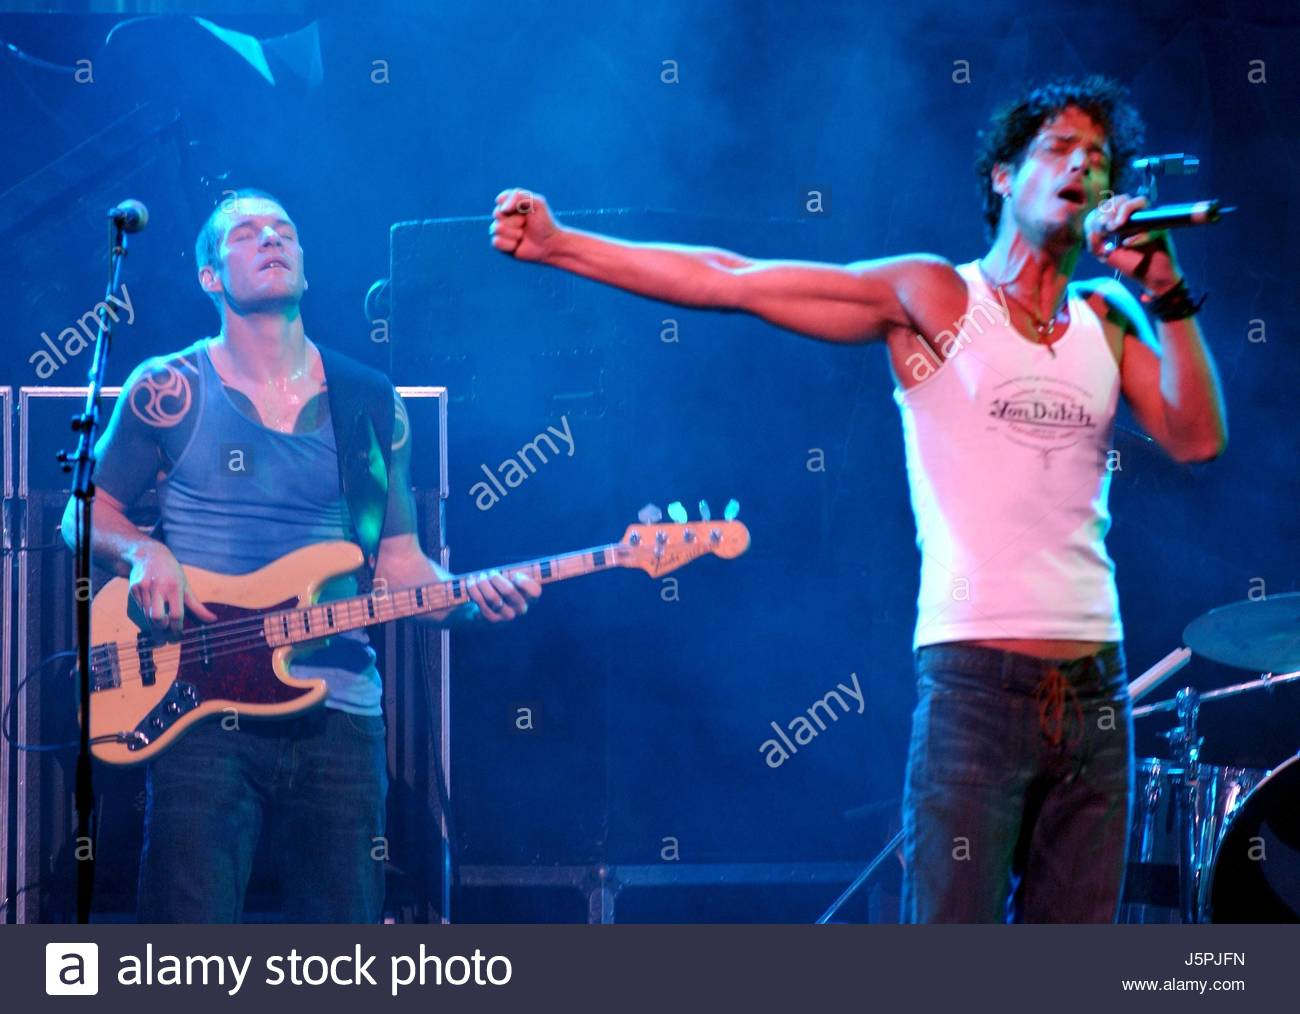 Kroq Almost Acoustic Christmas 2021 11 7 02 Audioslave Perform At The Kroq Almost Acoustic Christmas Credit Rtswift Mediapunch Stock Photo Alamy